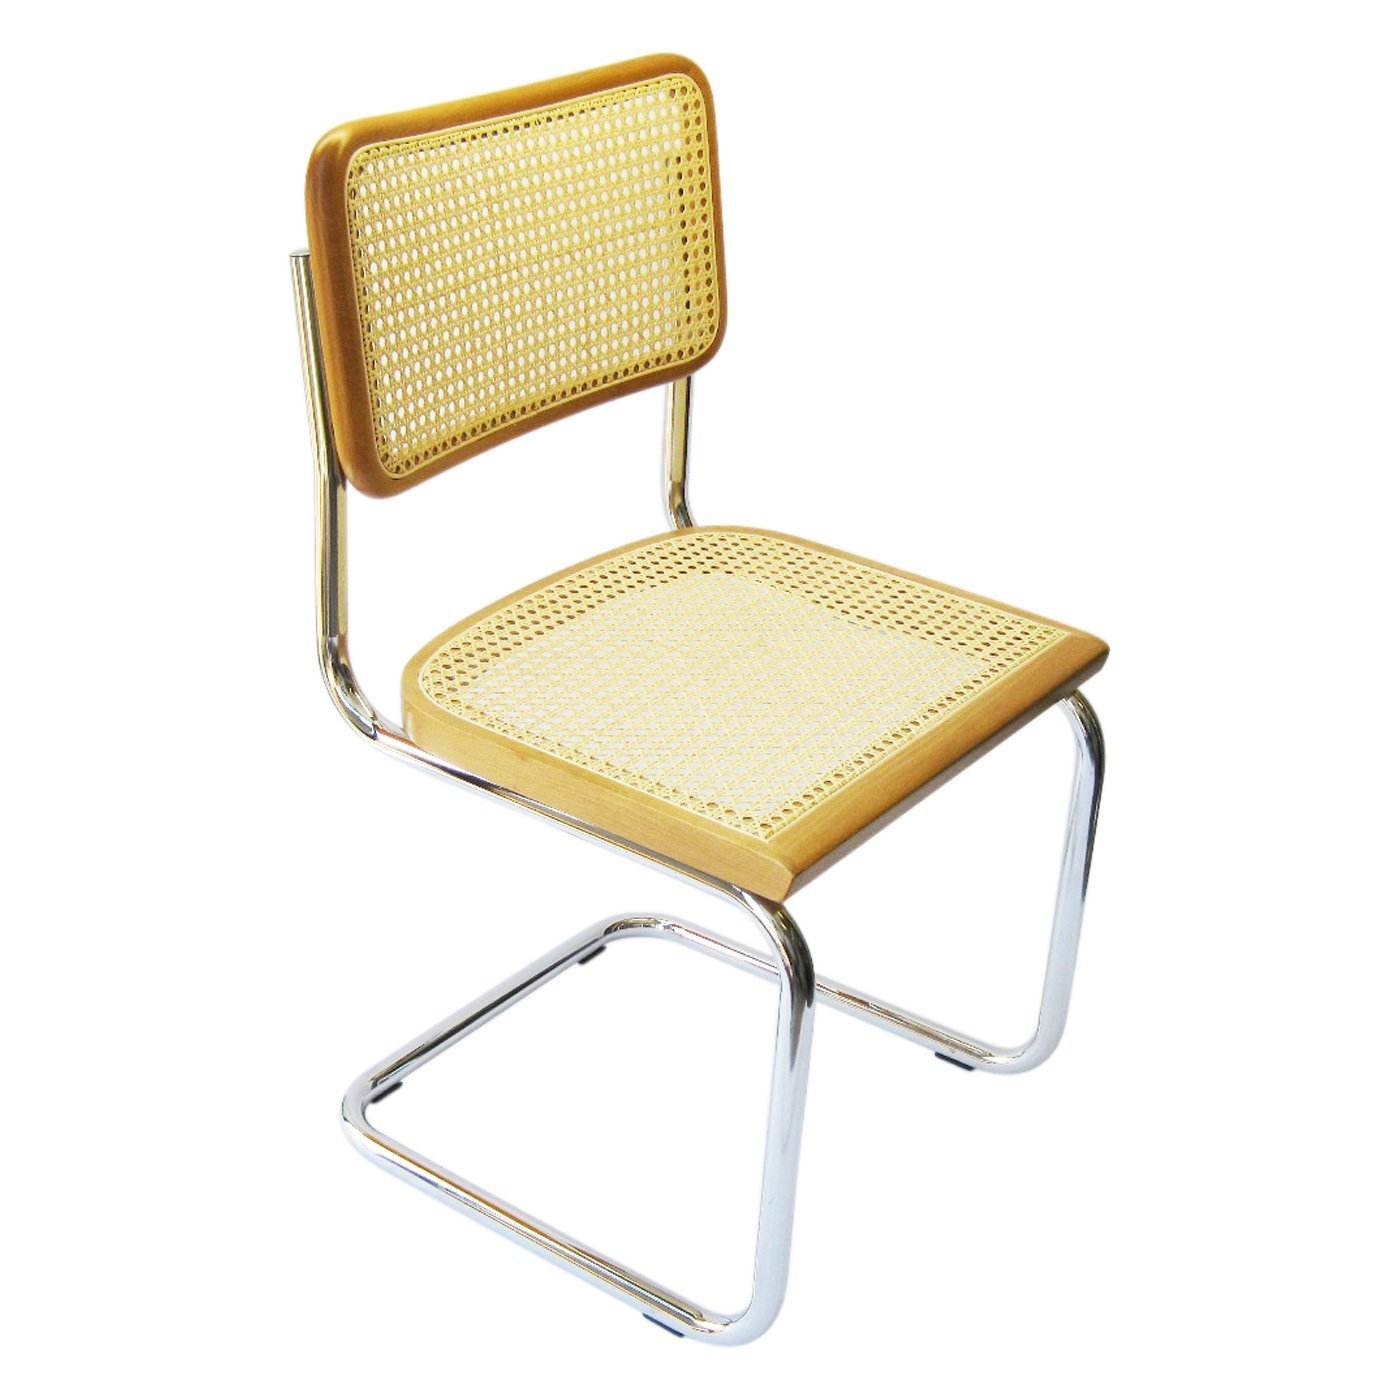 Awe Inspiring Cheap Cane Chair Find Cane Chair Deals On Line At Alibaba Com Pabps2019 Chair Design Images Pabps2019Com